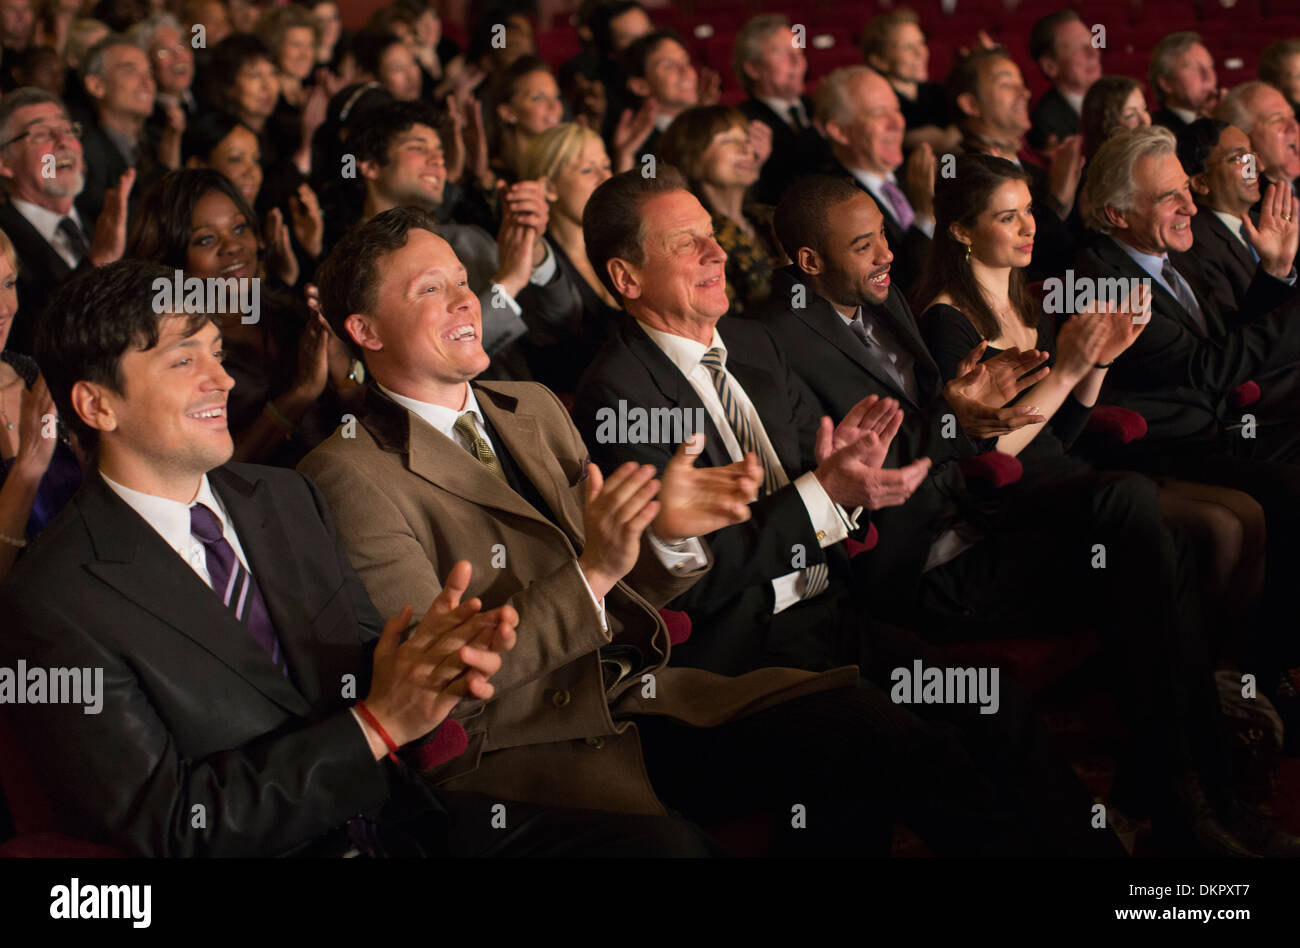 Clapping theater audience - Stock Image